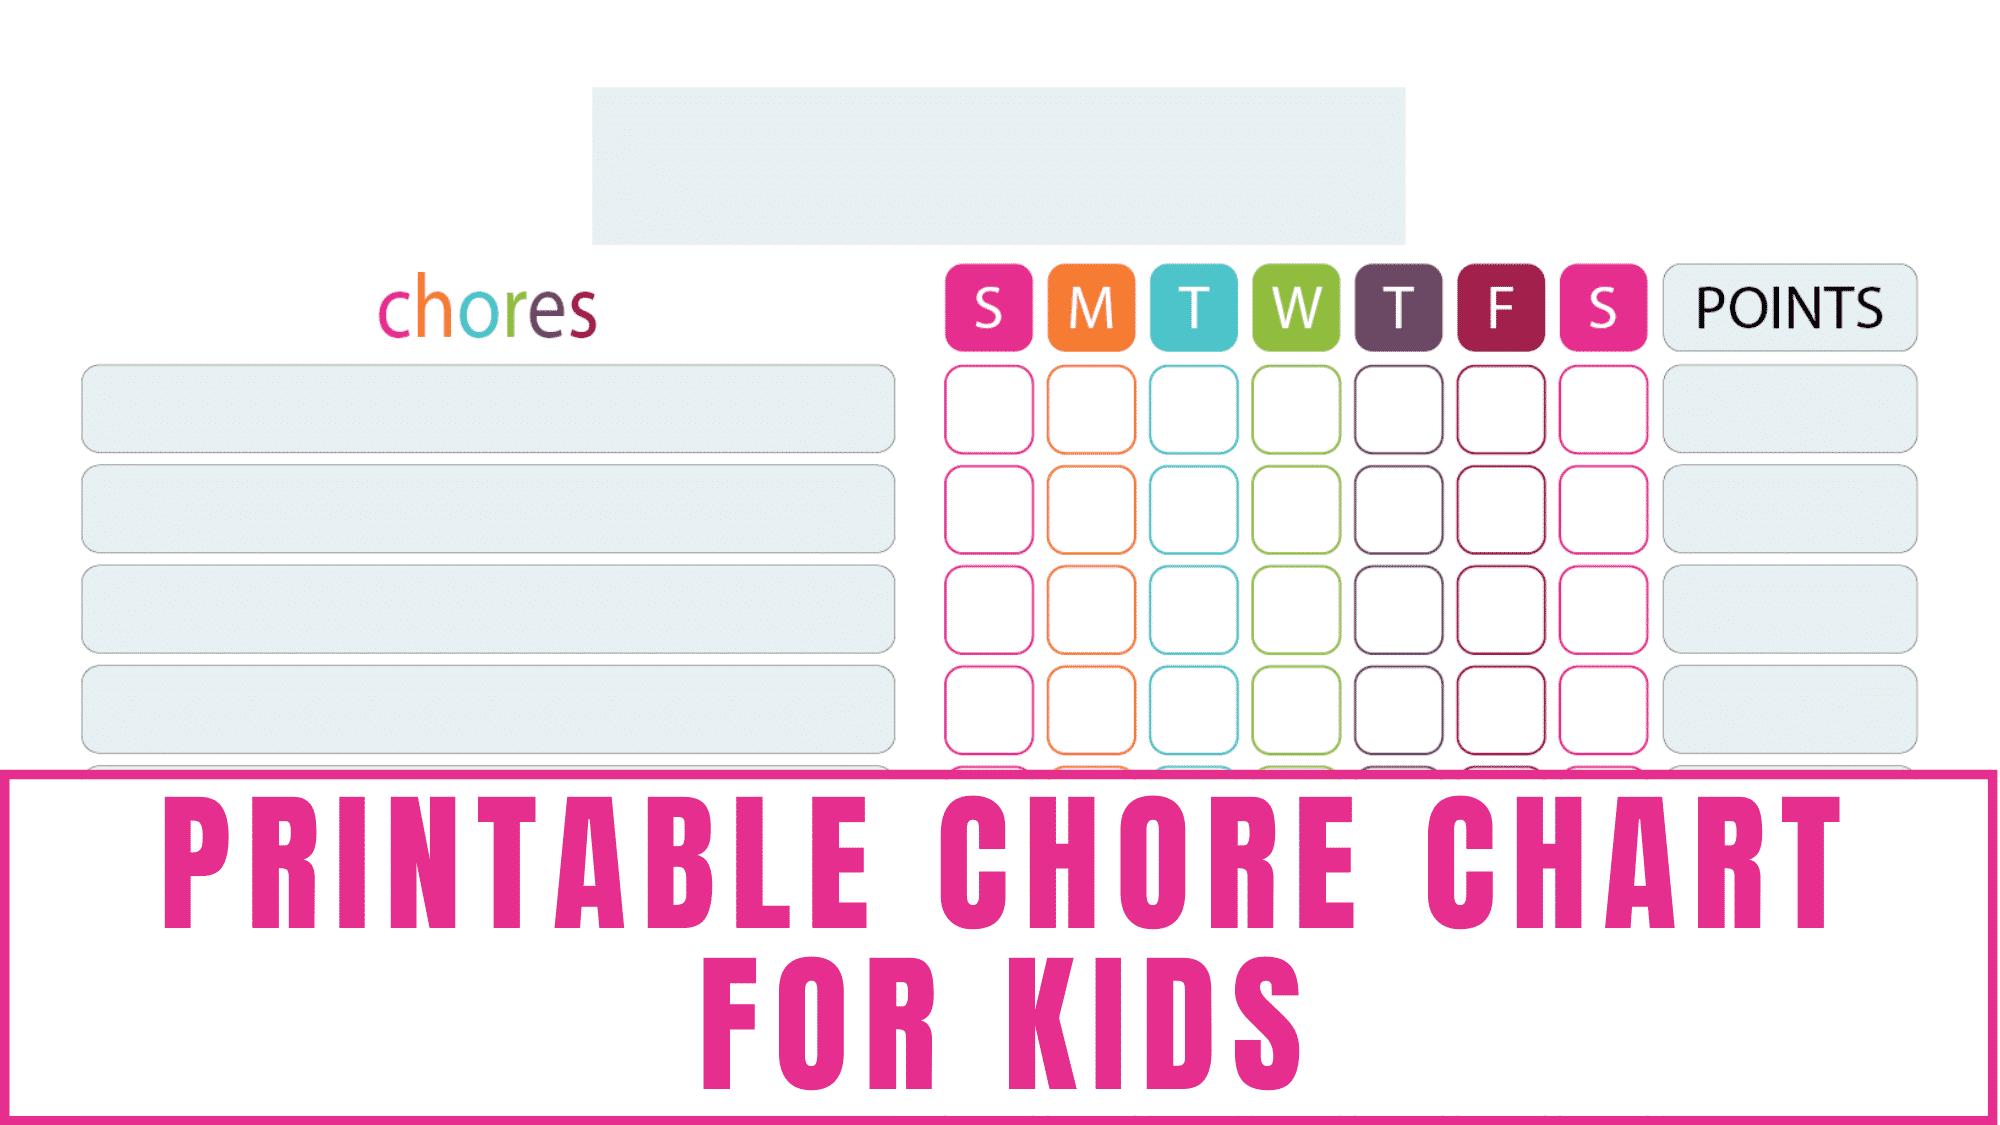 This bright and cheery printable chore chart for kids is a great way to motivate your kids to help out around the house.